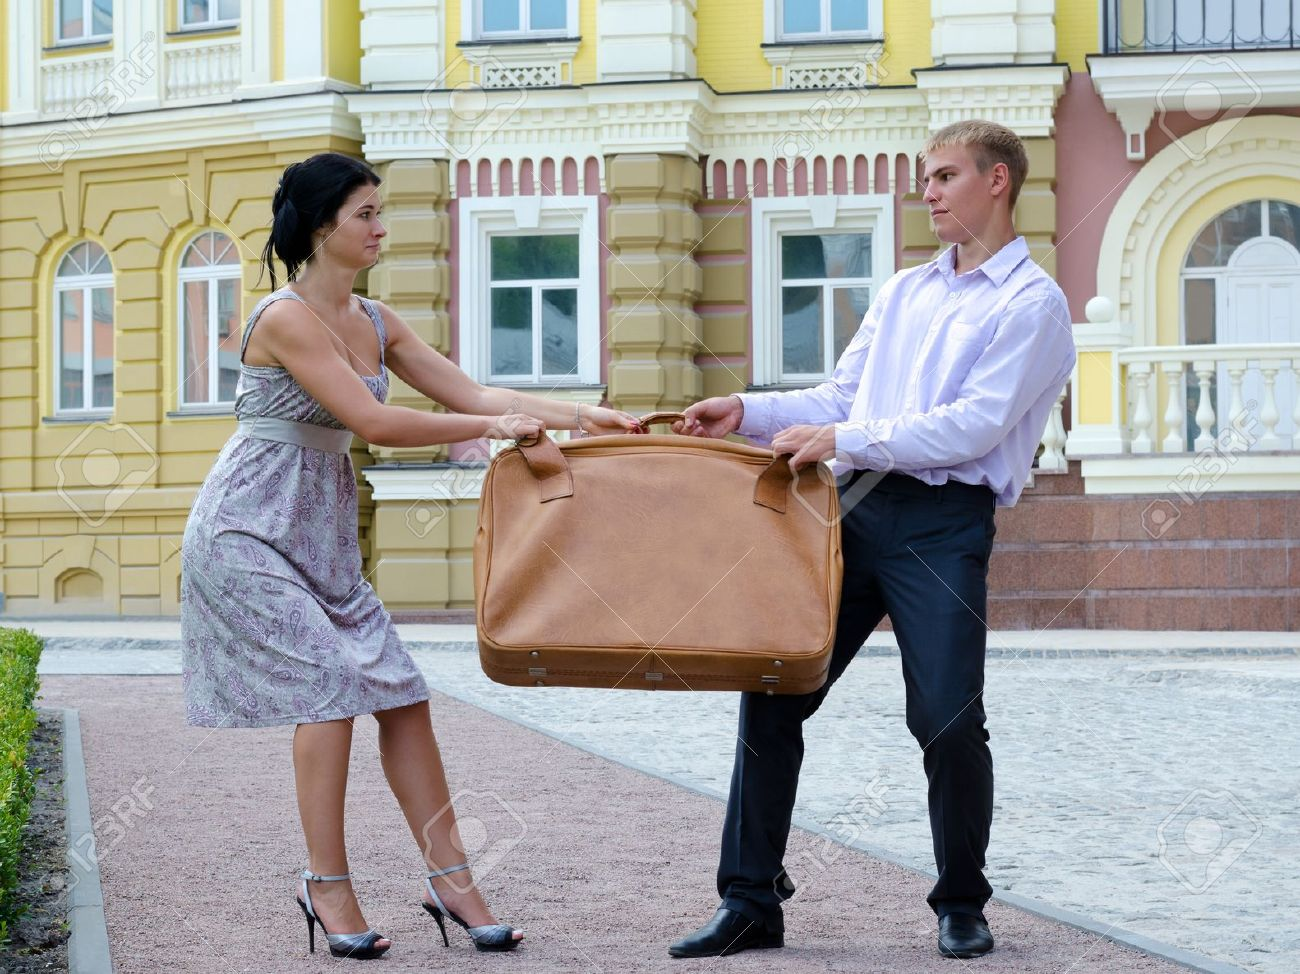 Stylish young couple fighting over luggage and playing tug of war with a large suitcase on an urban street Stock Photo - 14738934